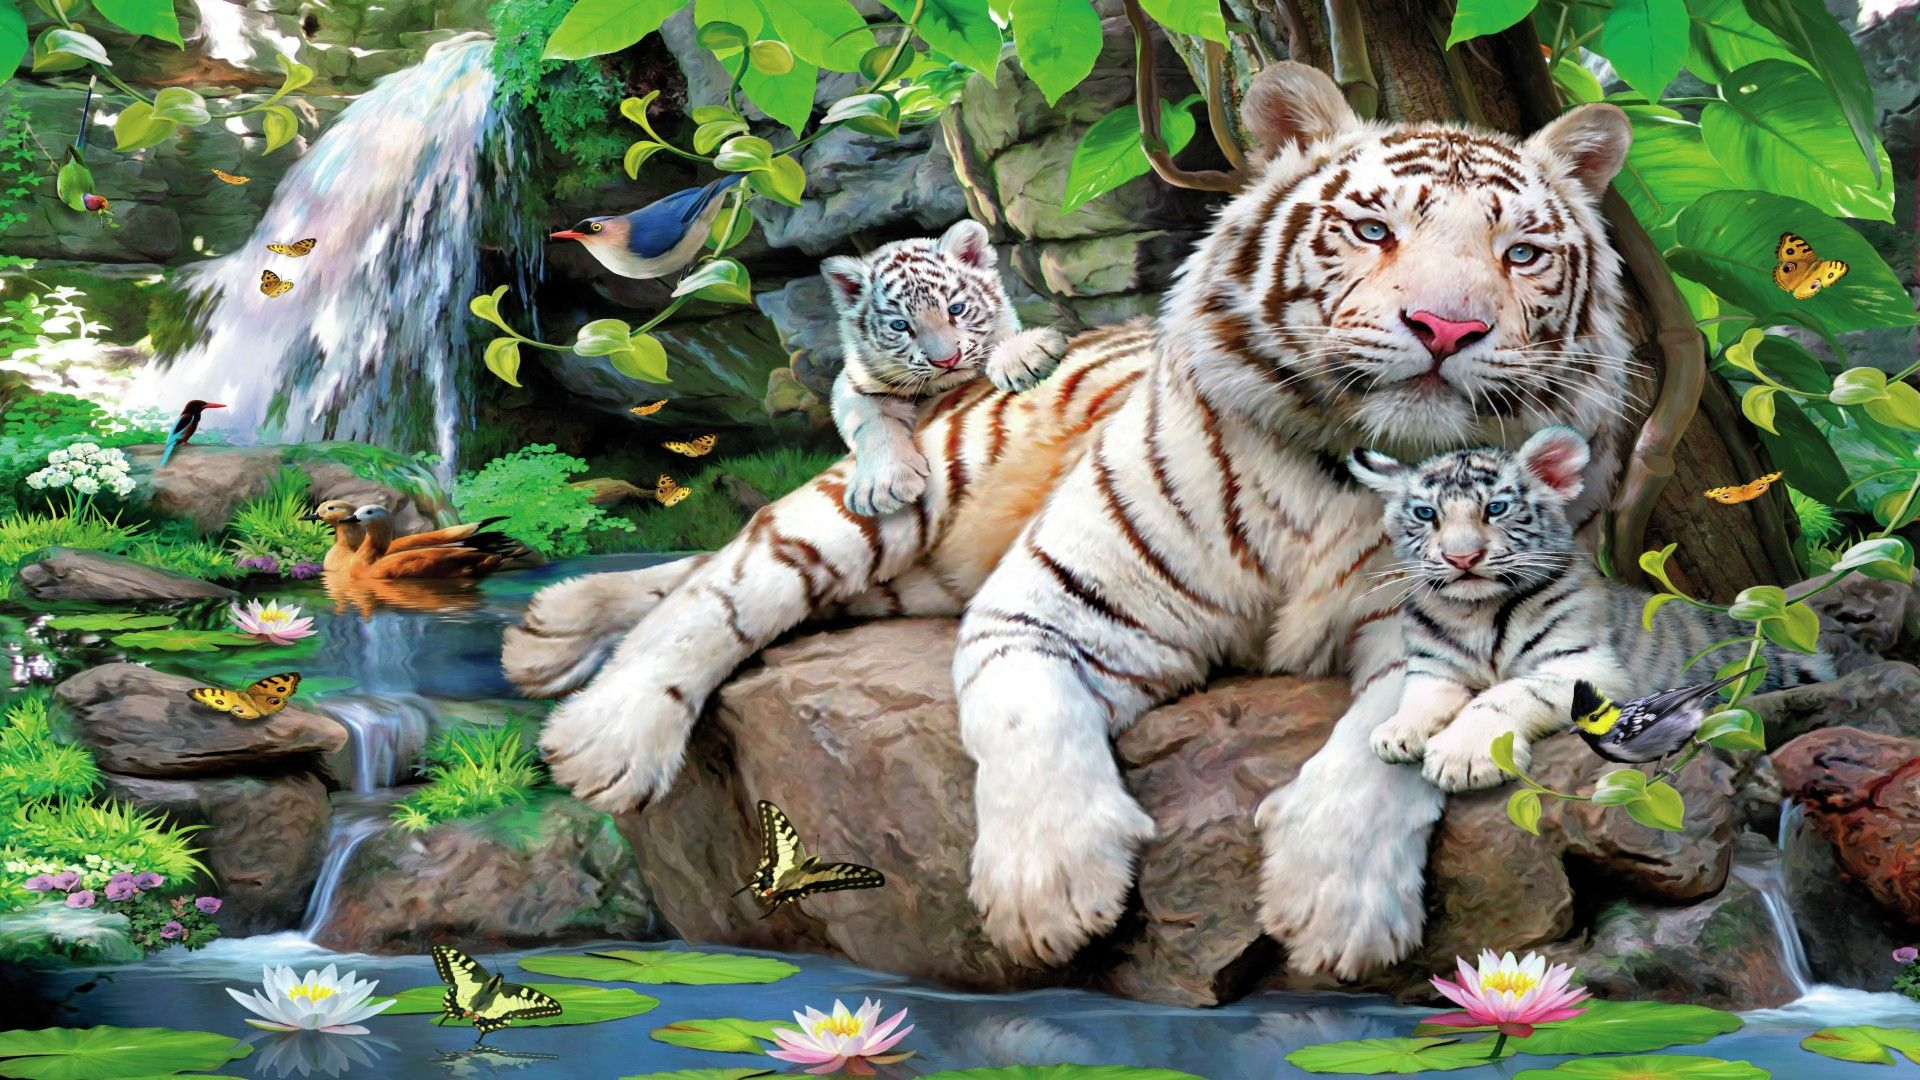 Royal bengal tiger is a great wallpaper for your computer desktop and - White Tiger With Cubs Hd Hd Desktop Background Wallpaper Free